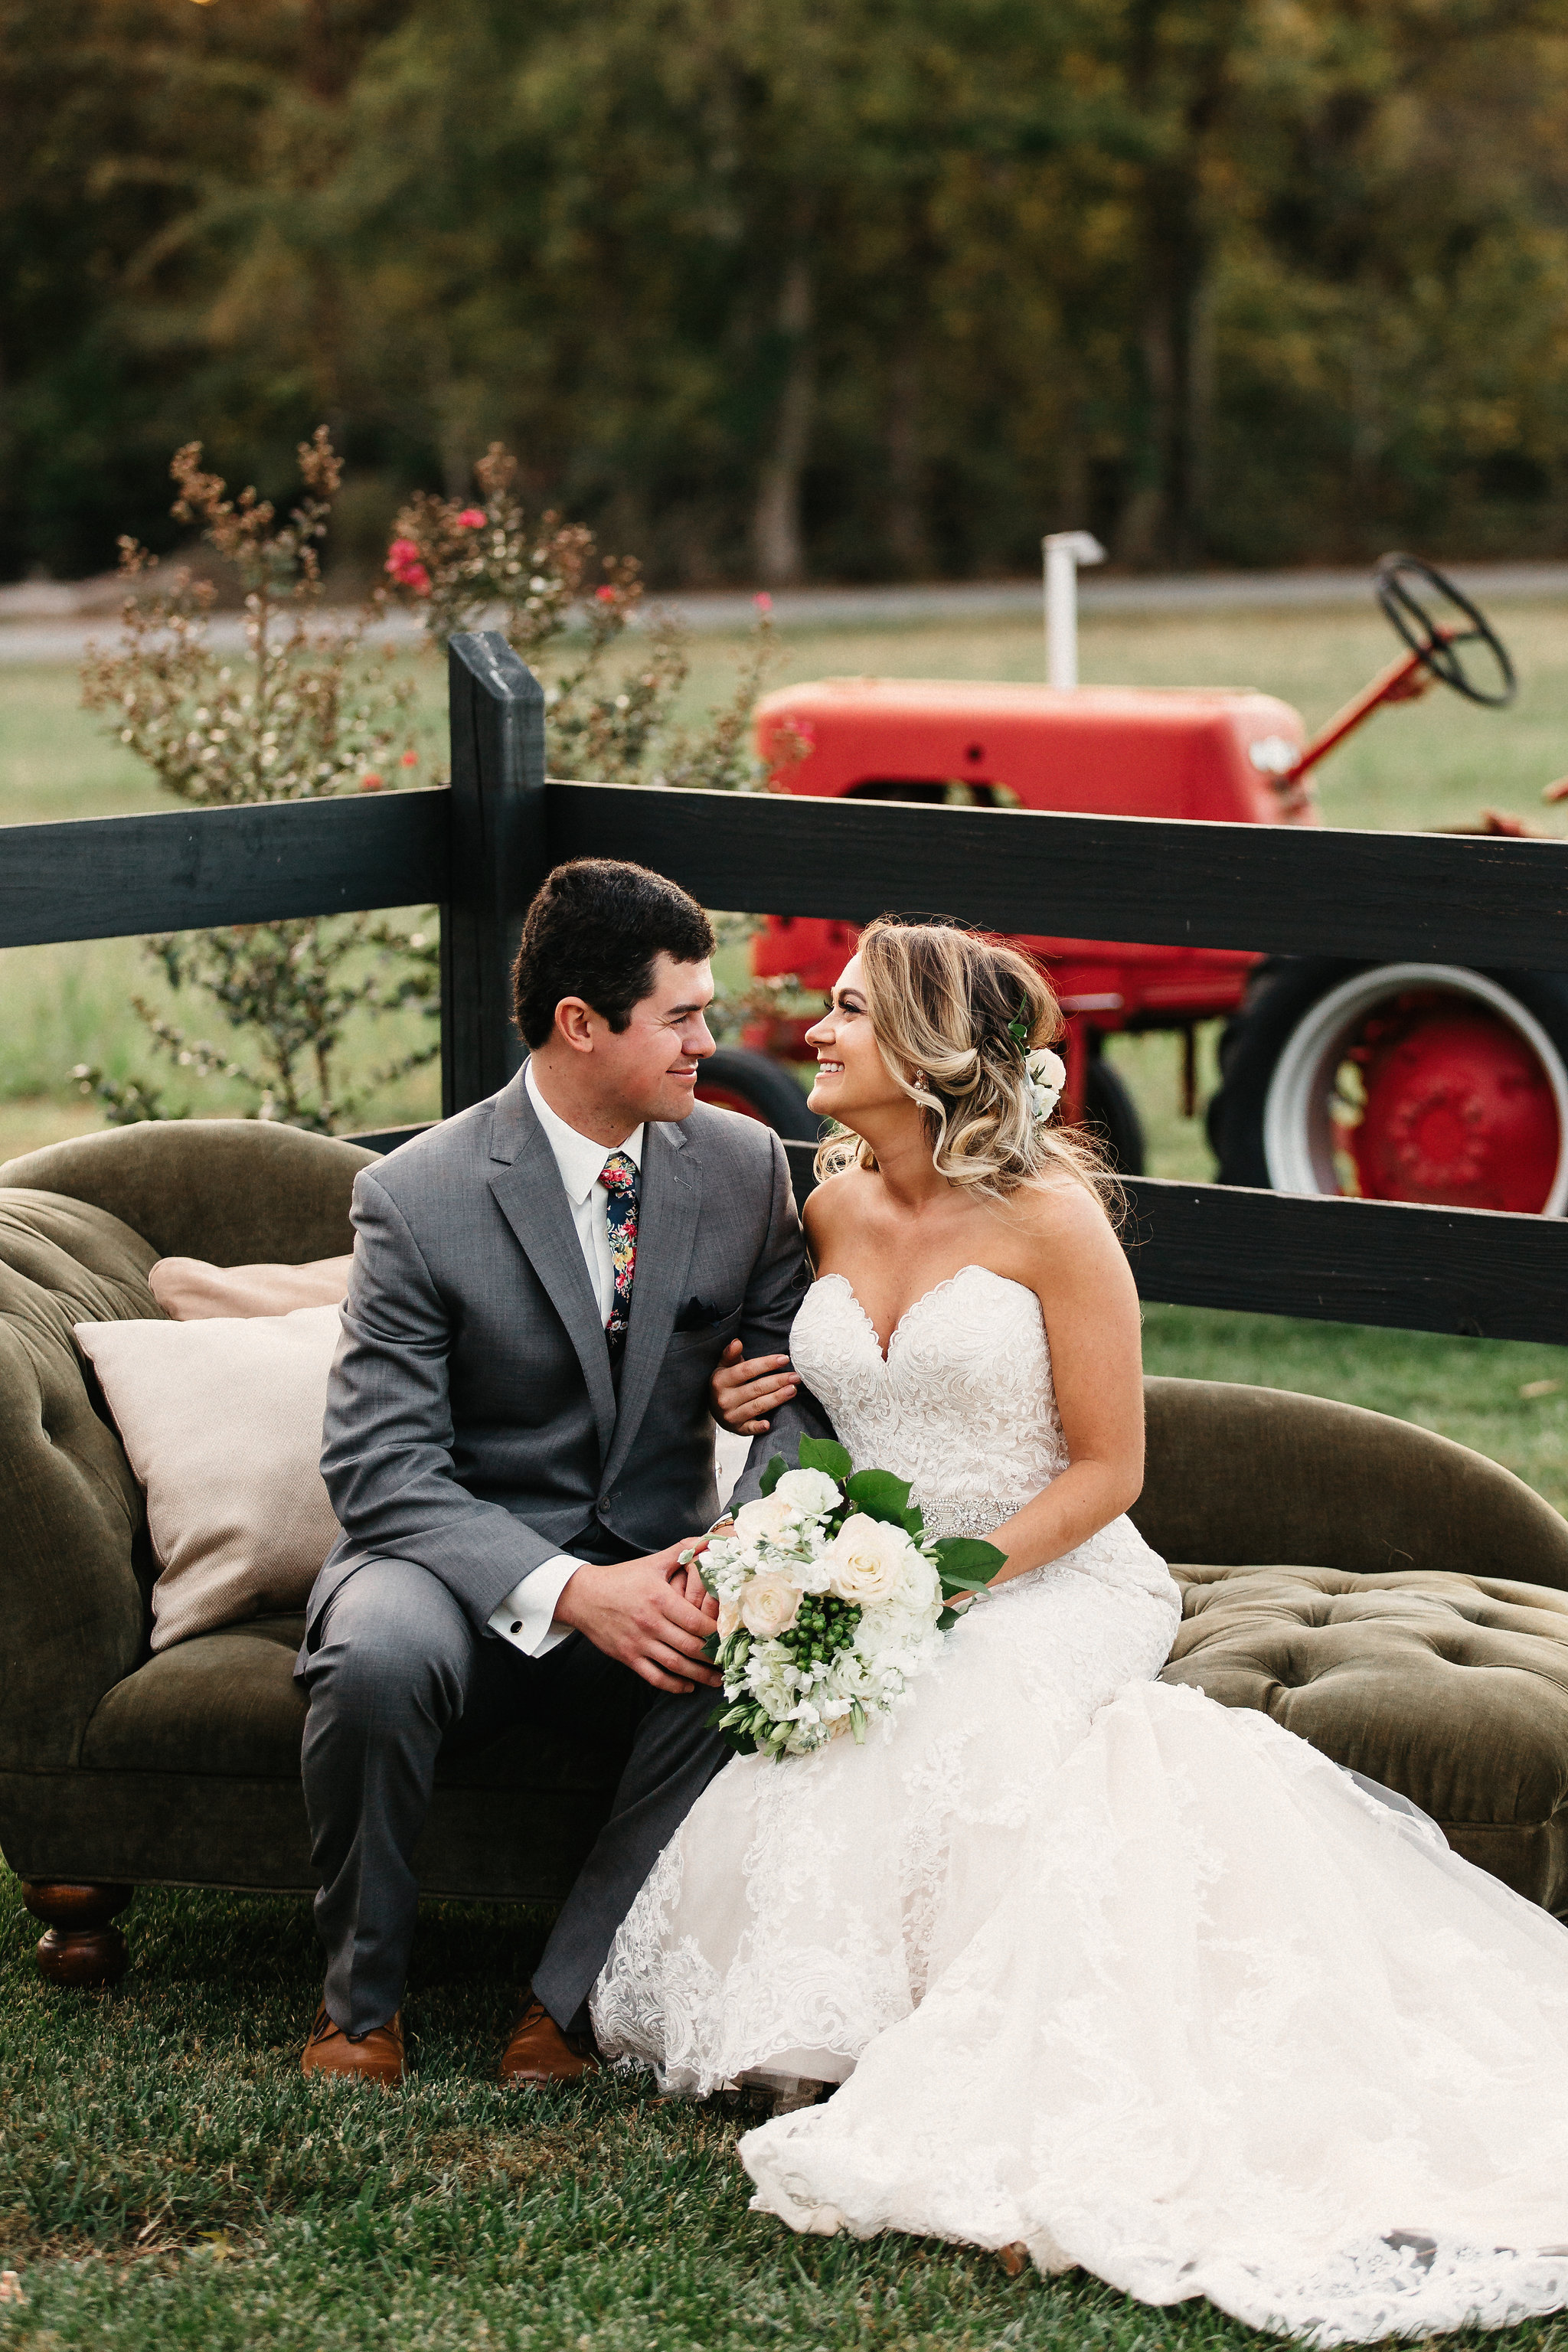 Ashley&NathanMarried2017-11-10at19.26.49PM133.jpg